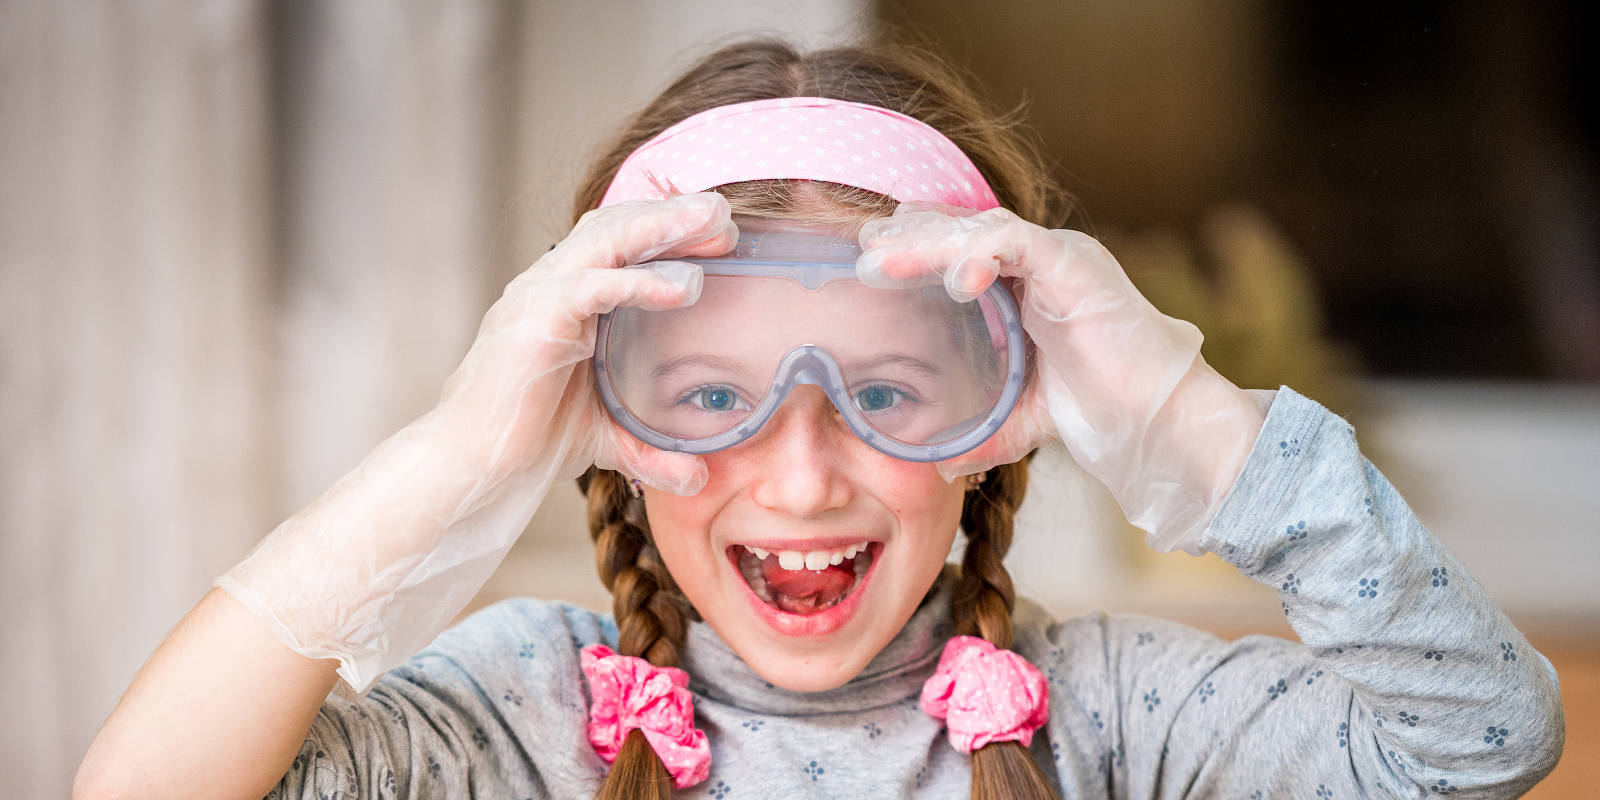 Girl wearing scientific goggles and smiling